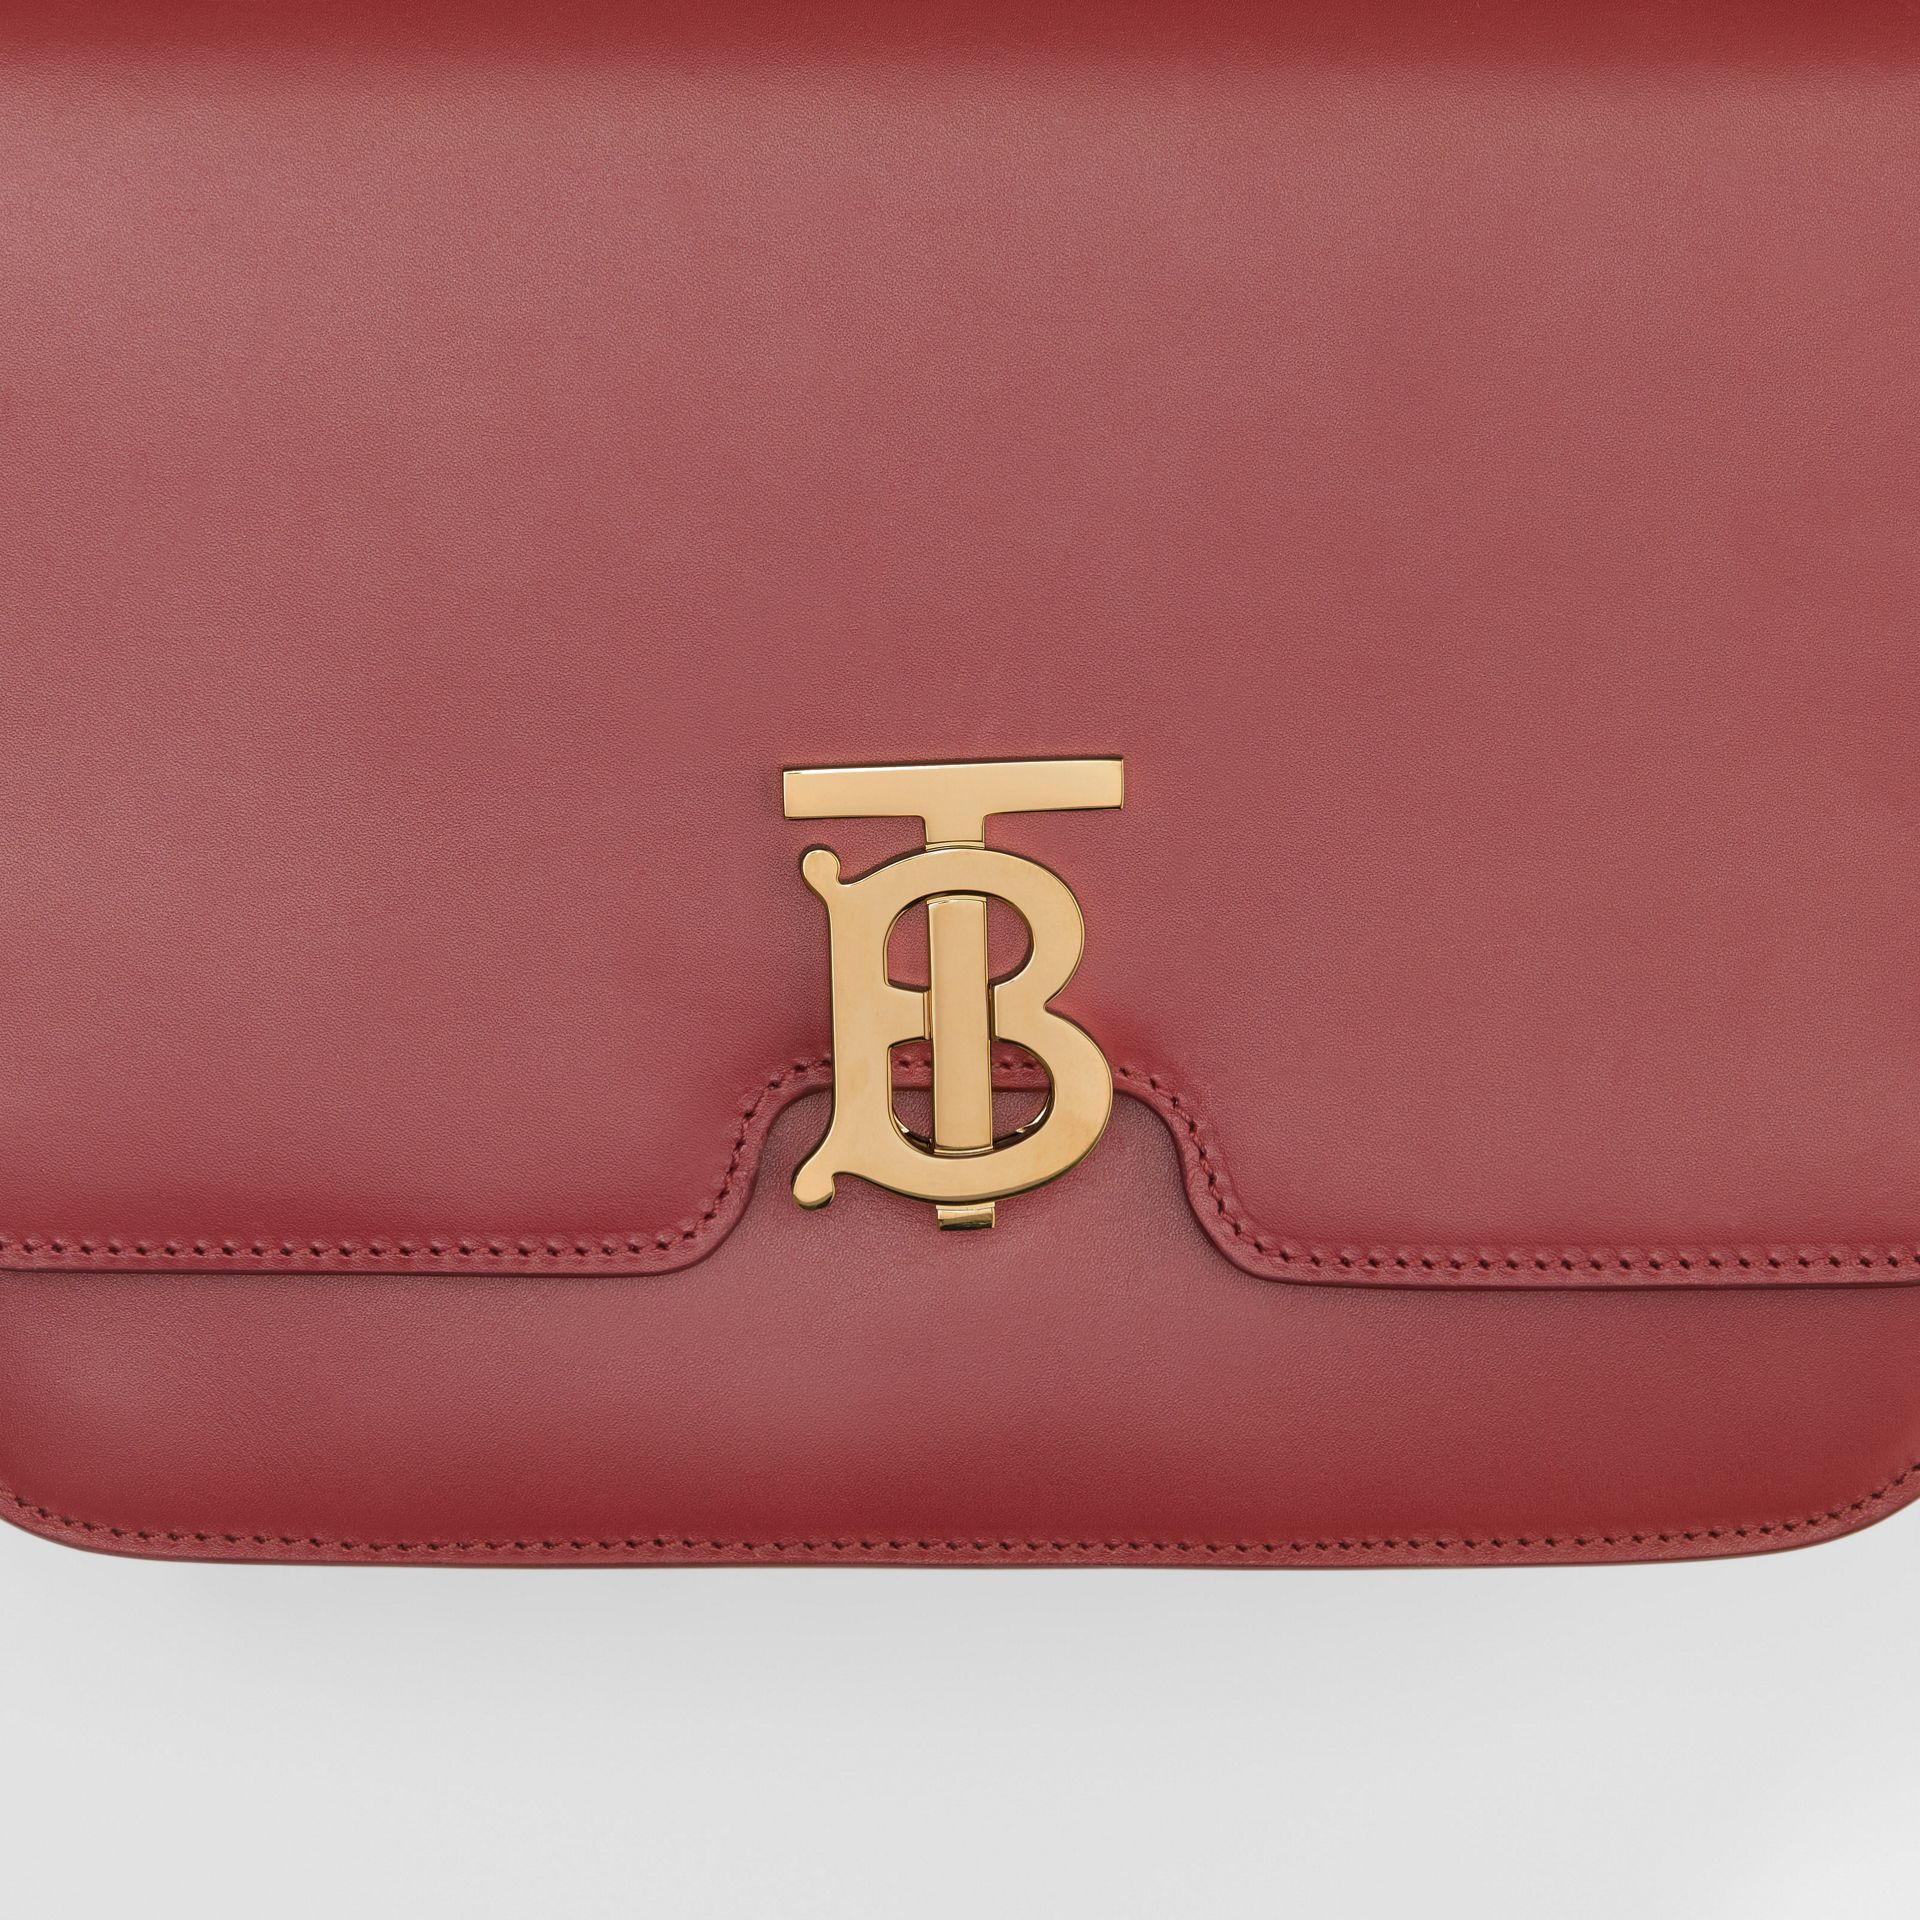 Medium Leather TB Bag in Crimson - Women | Burberry Hong Kong - gallery image 1